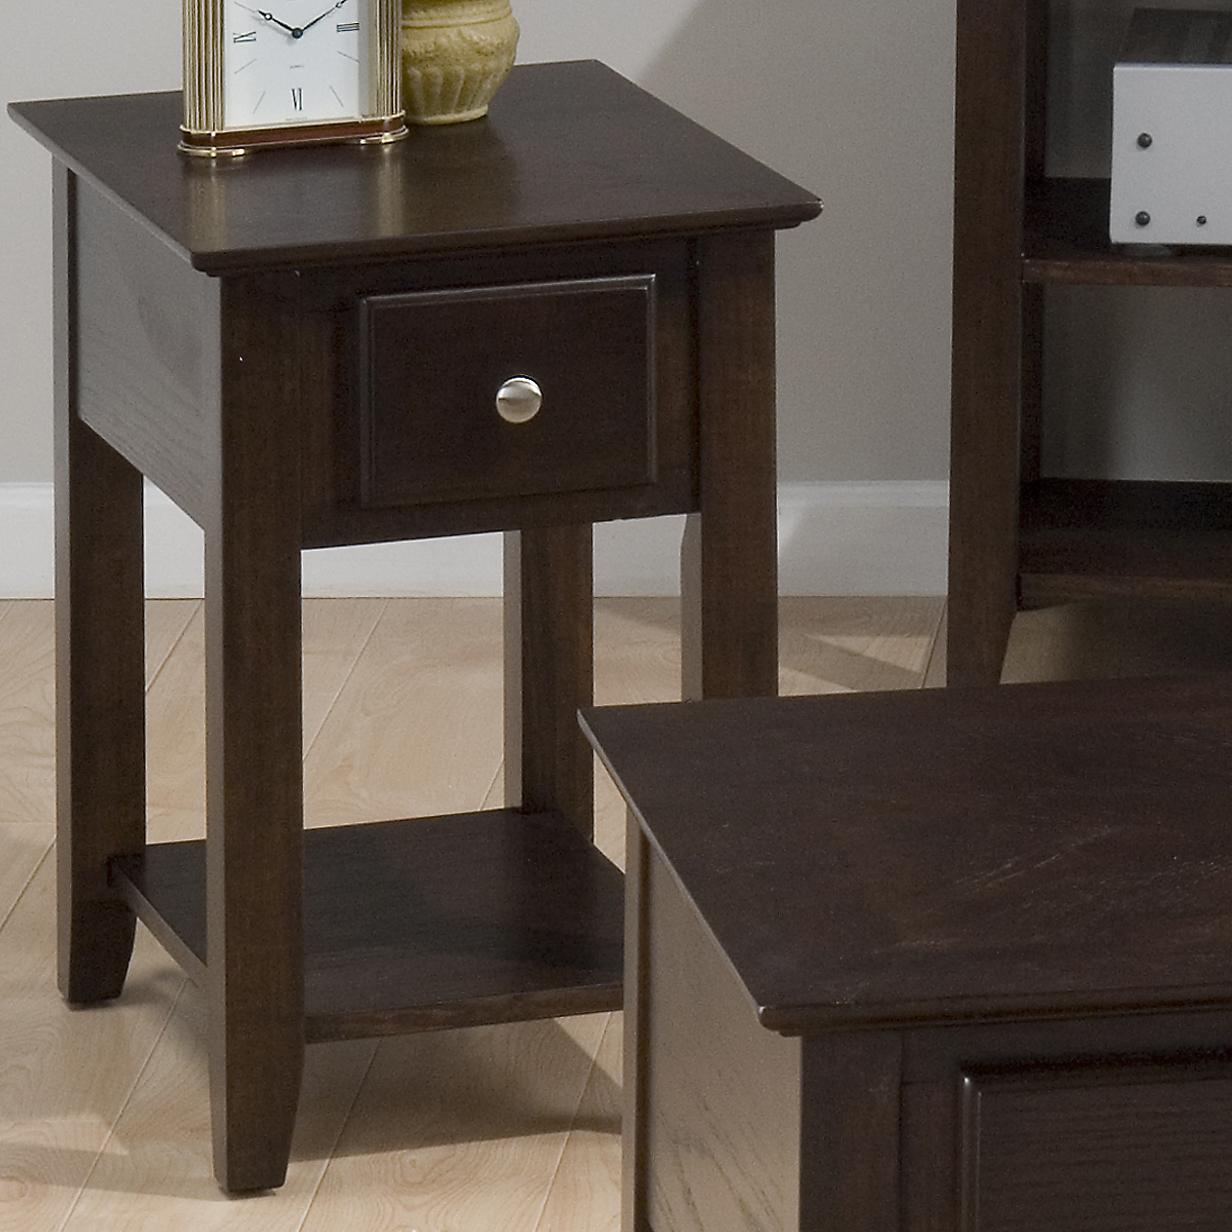 943 Chairside Table w/ Drawer and Shelf by Jofran at Pilgrim Furniture City